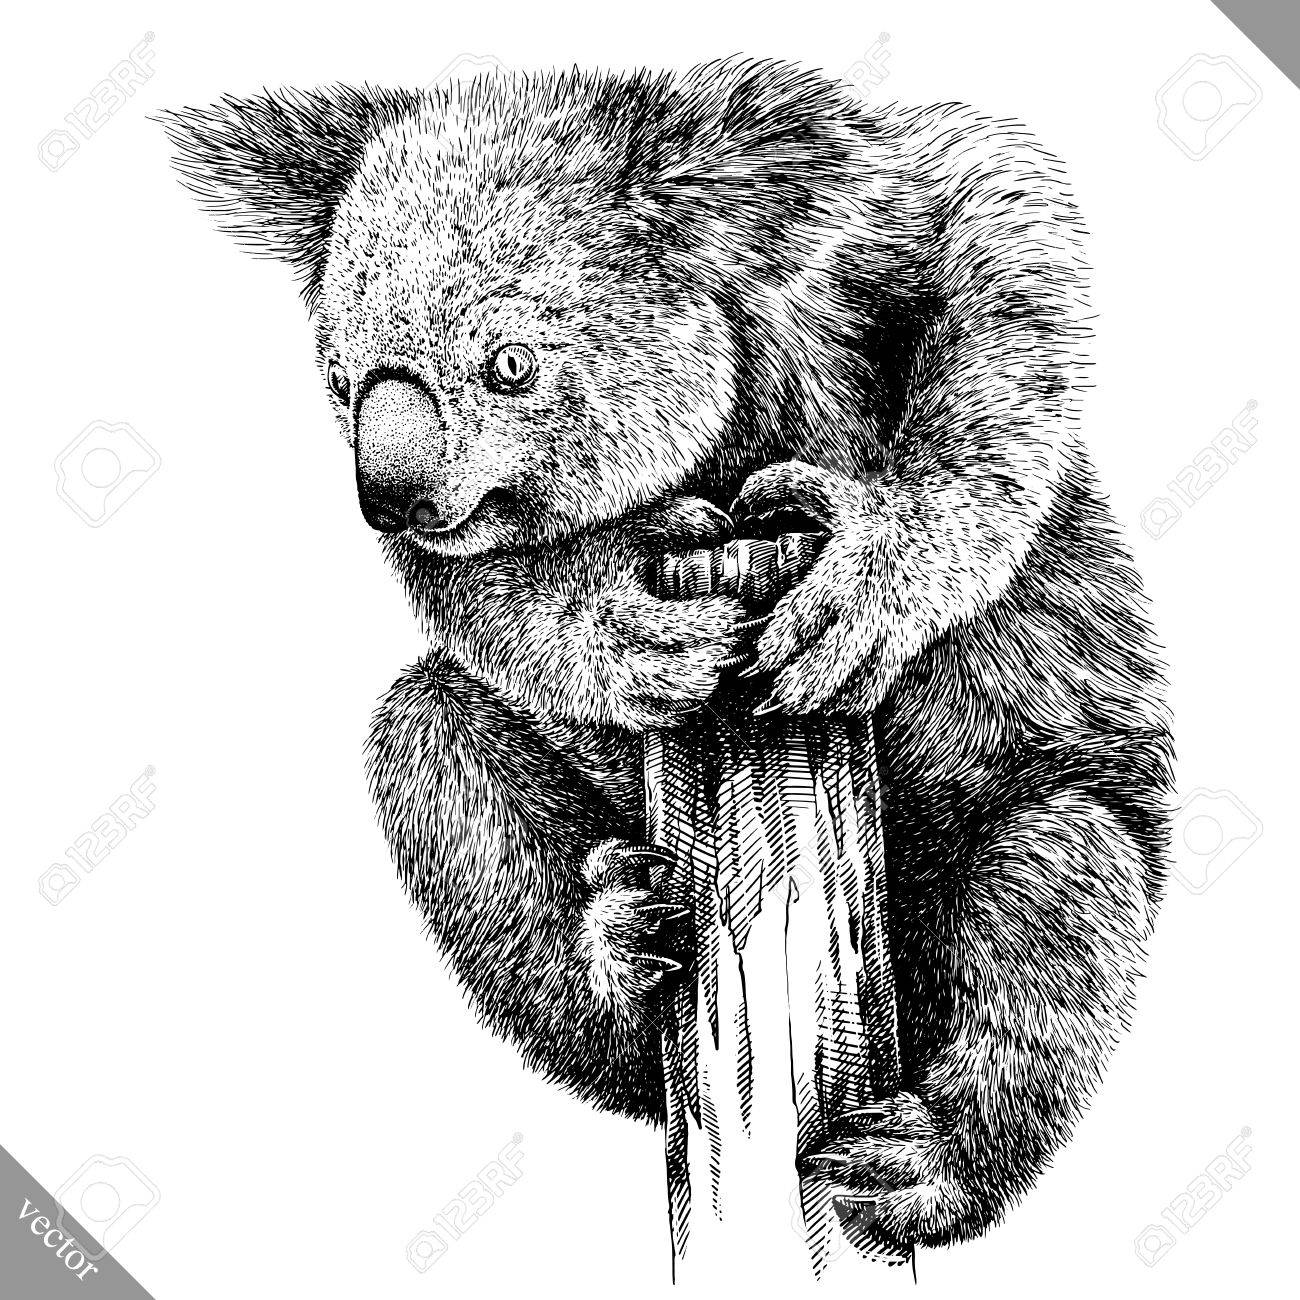 Black and white engrave isolated koala illustration stock vector 85022584